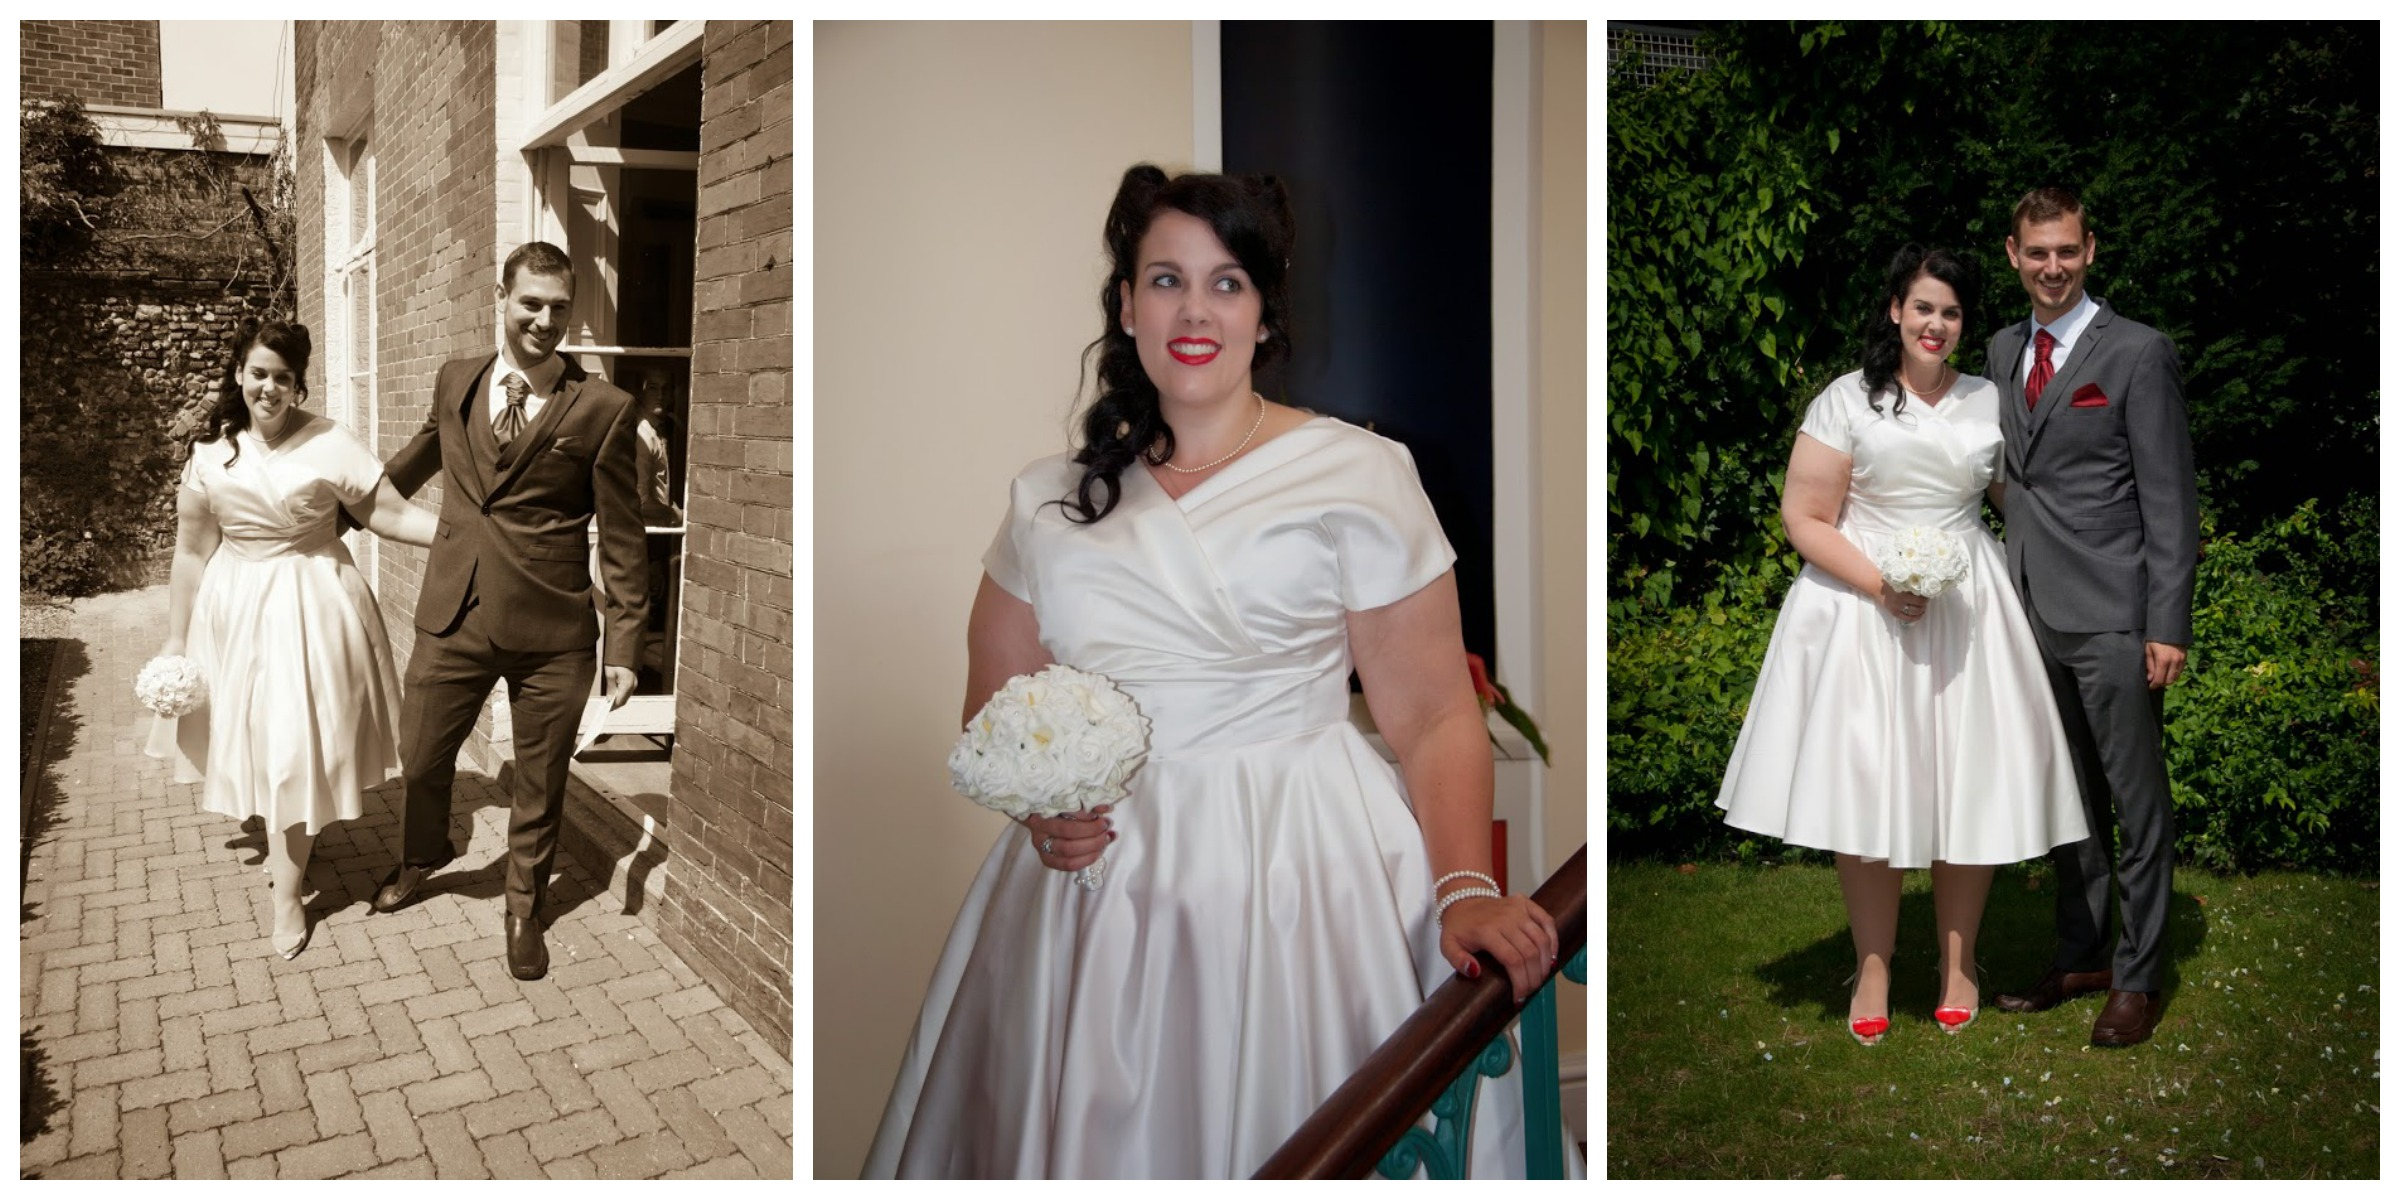 A Very Vintage Wedding Dress- Part Three - Miss Victory Violet